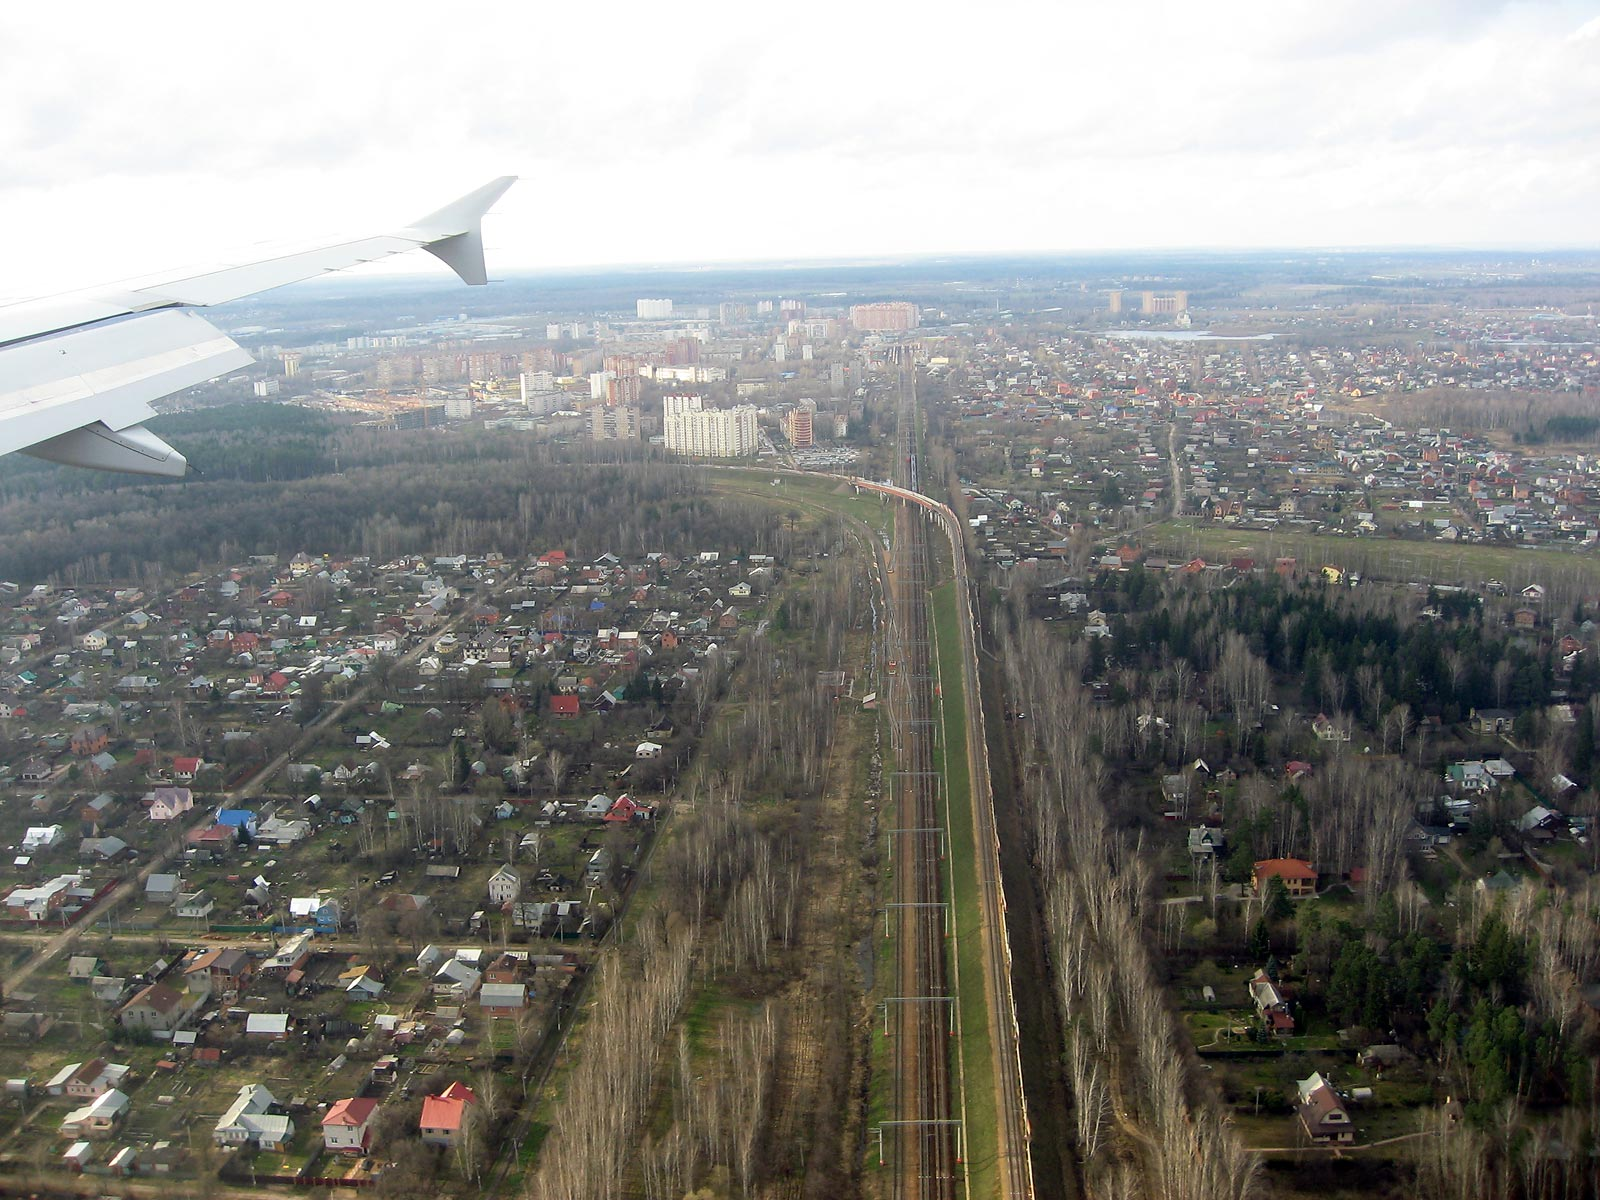 Landing at the Moscow Sheremetyevo airport